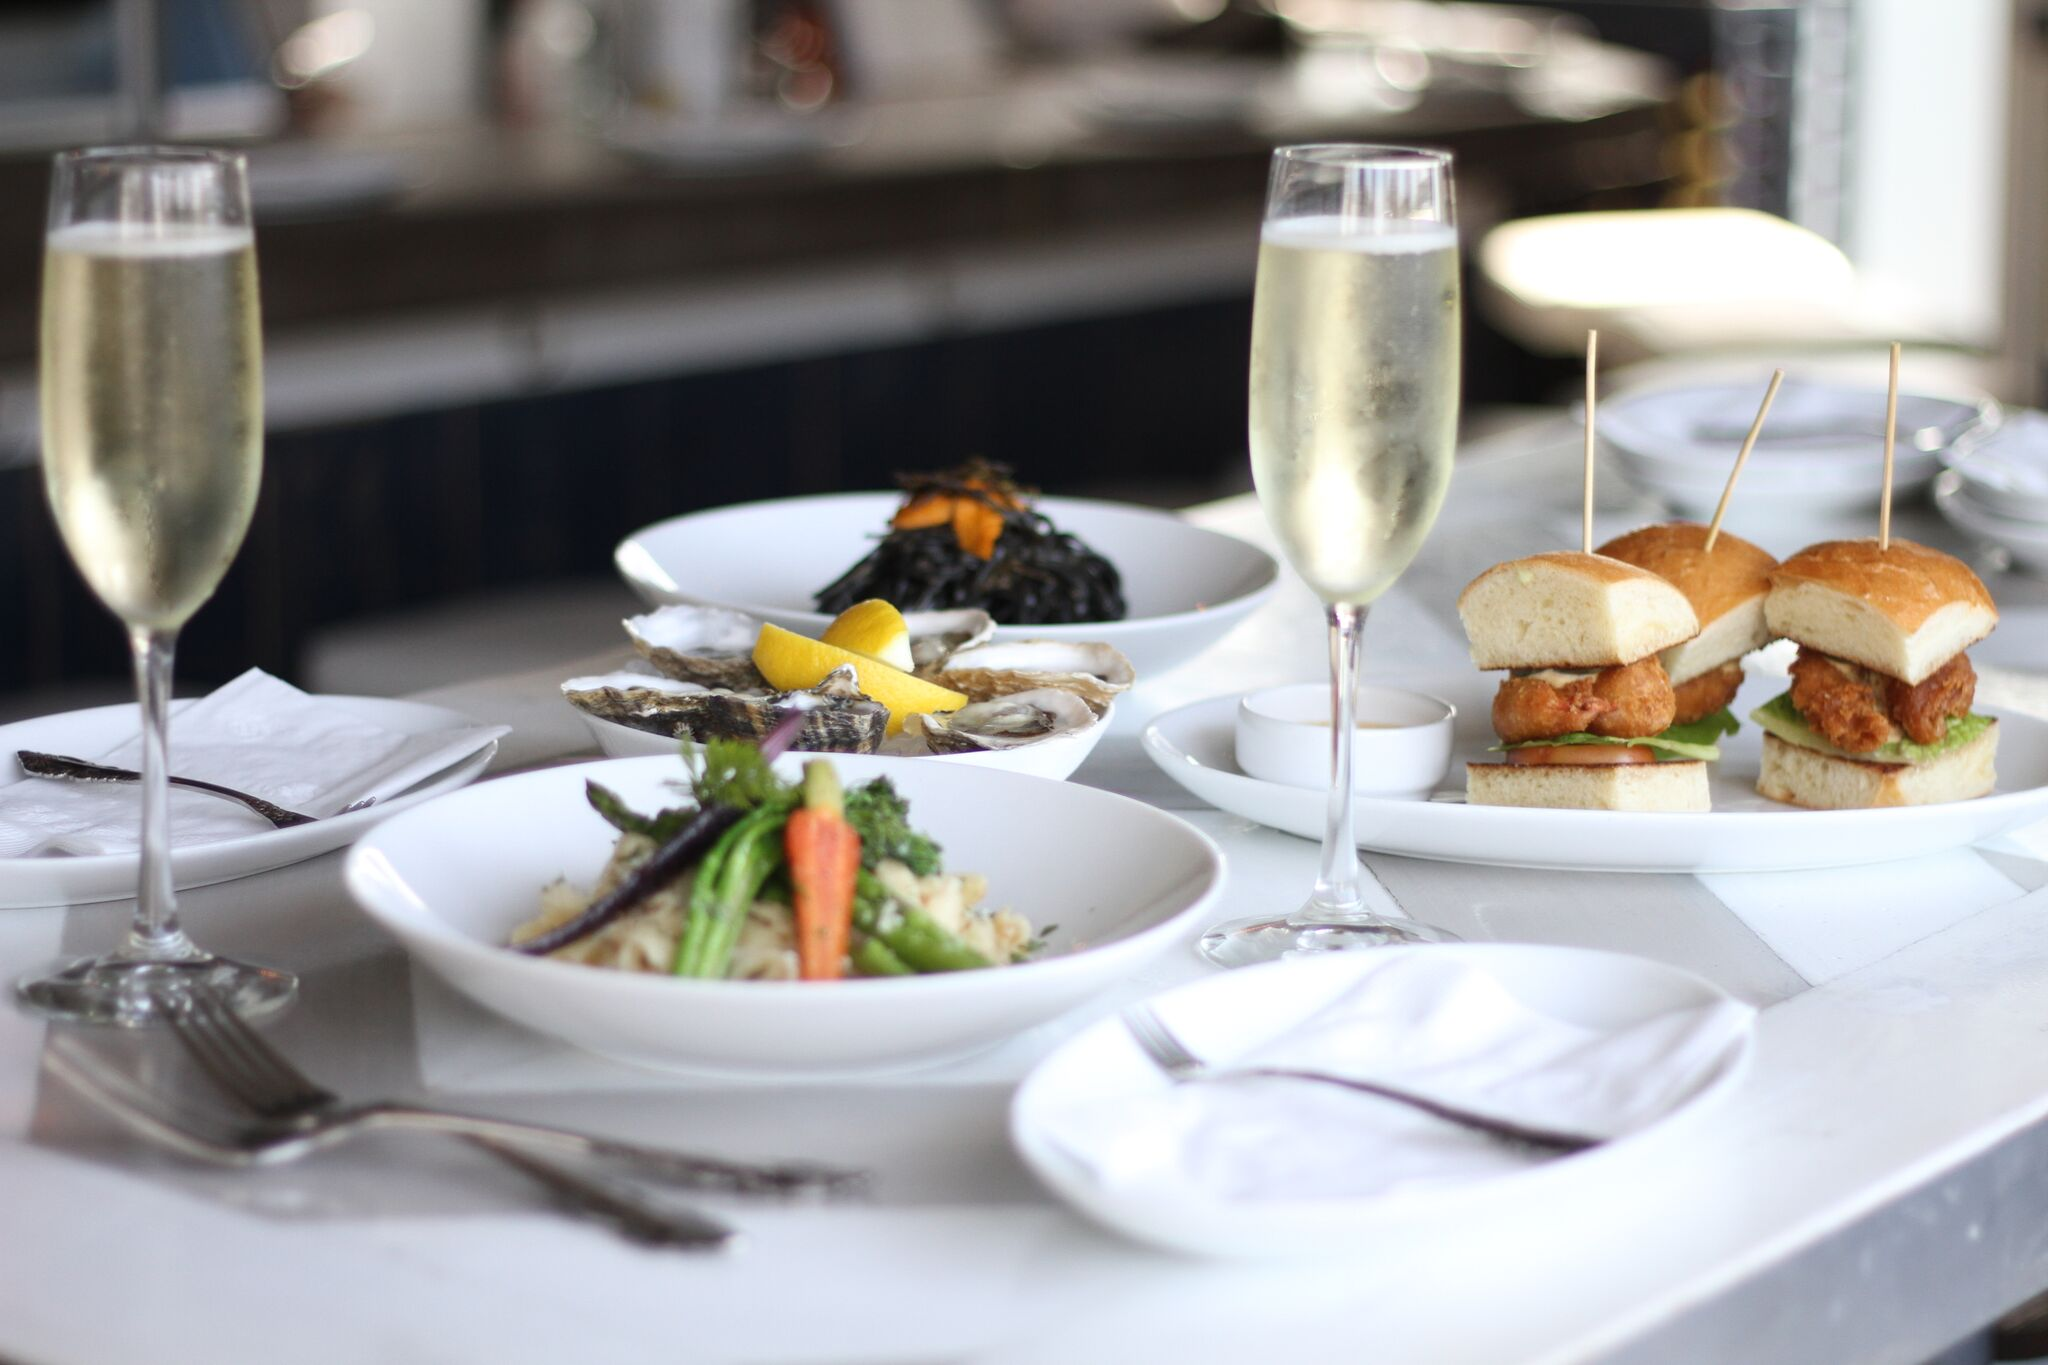 A varietal spread of Shuck Oyster Bar's seafood offerings, complete with bubbly